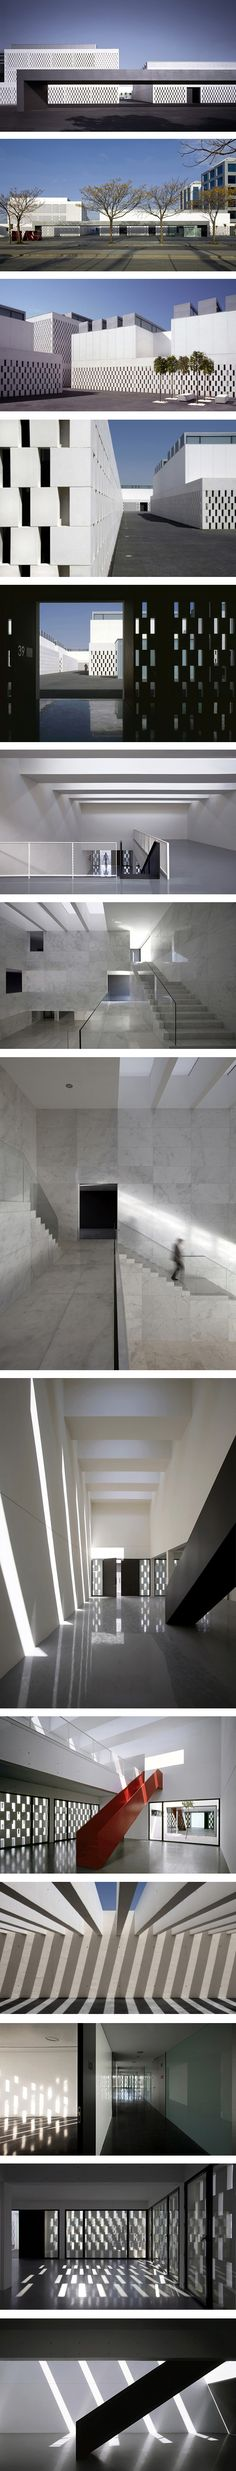 PEASS (Business Park for Sacred Art) in Seville by Suarez Santas Architects